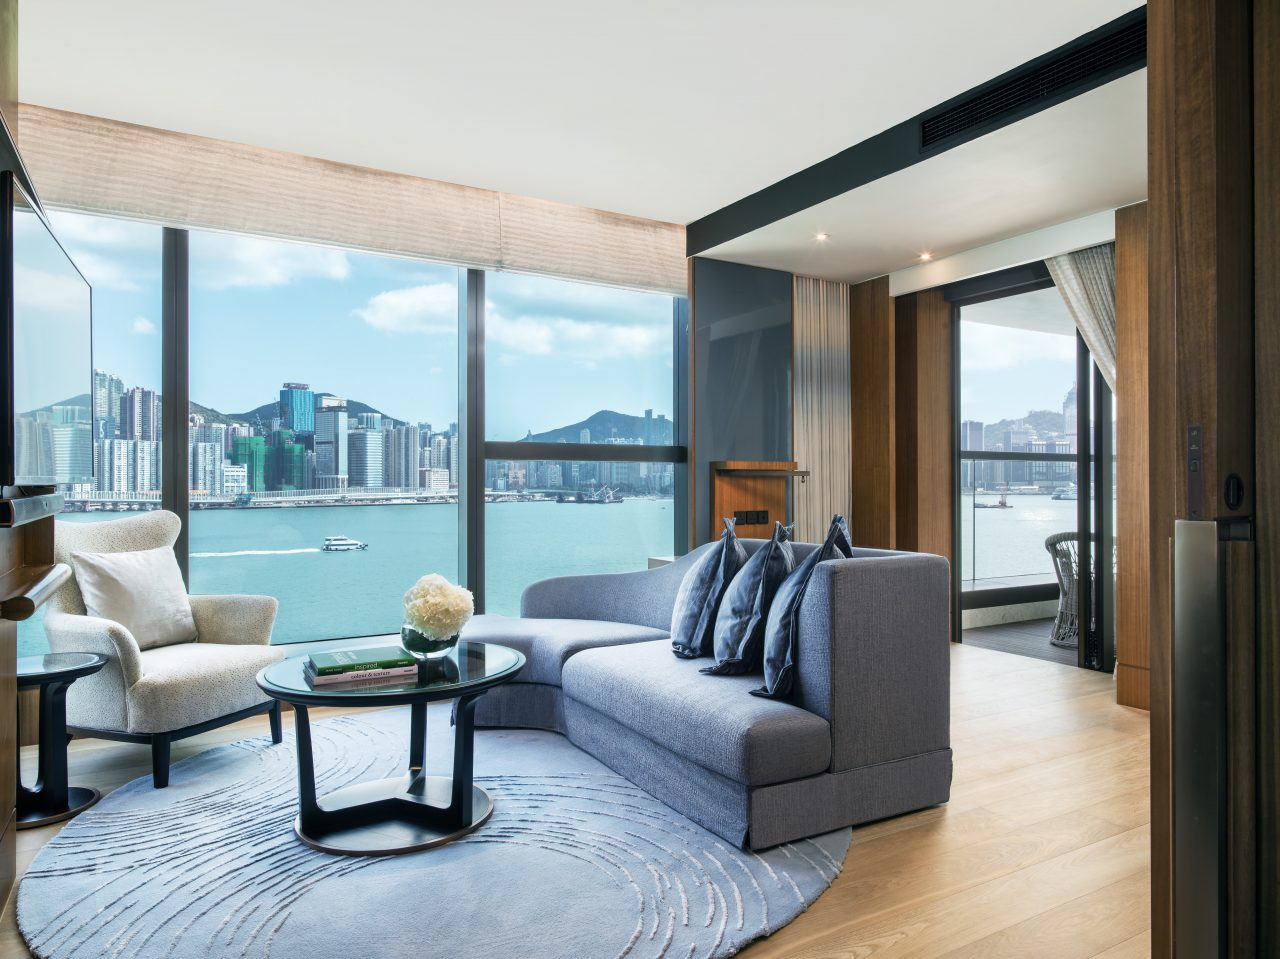 Kerry-Hotels-Hong-Kong-Club-Premier-Sea-view-with-Balcony